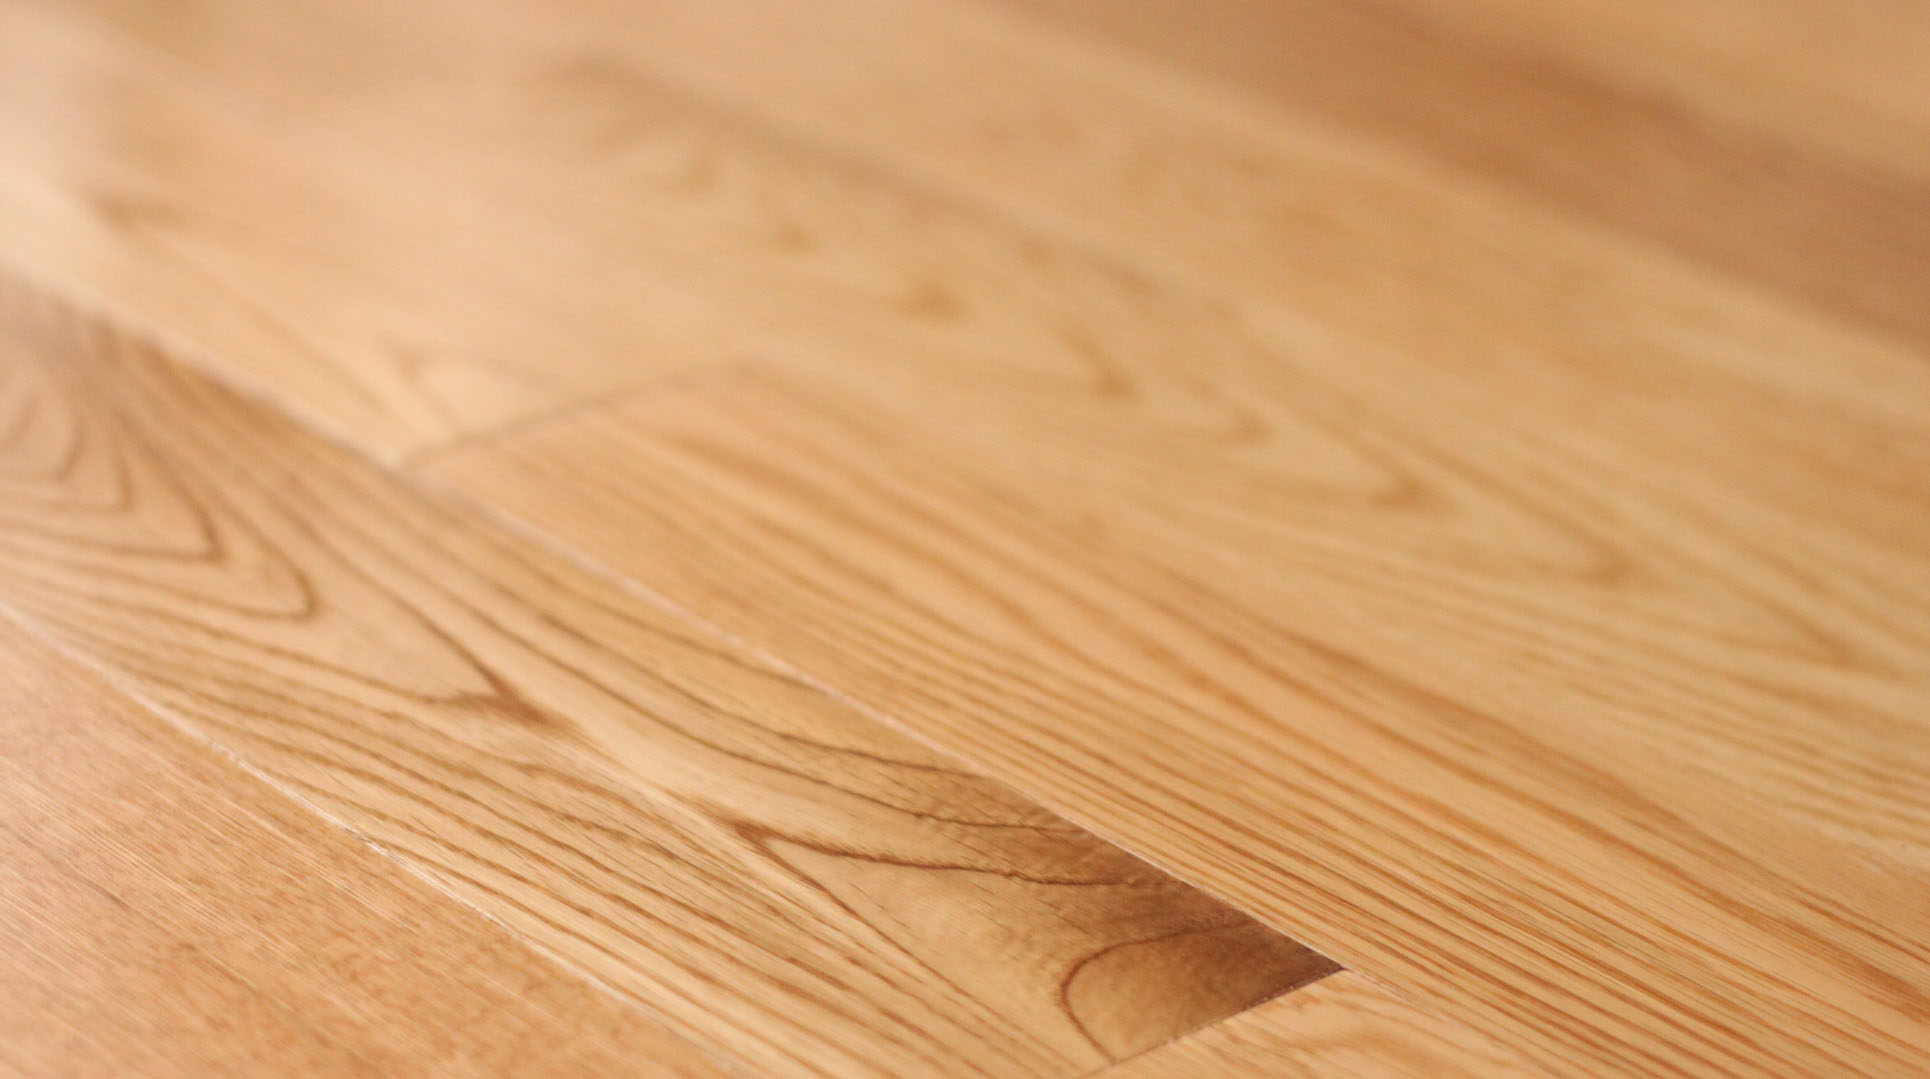 Engineered hardwood flooring in vancouver flooring company for Hardwood flooring company